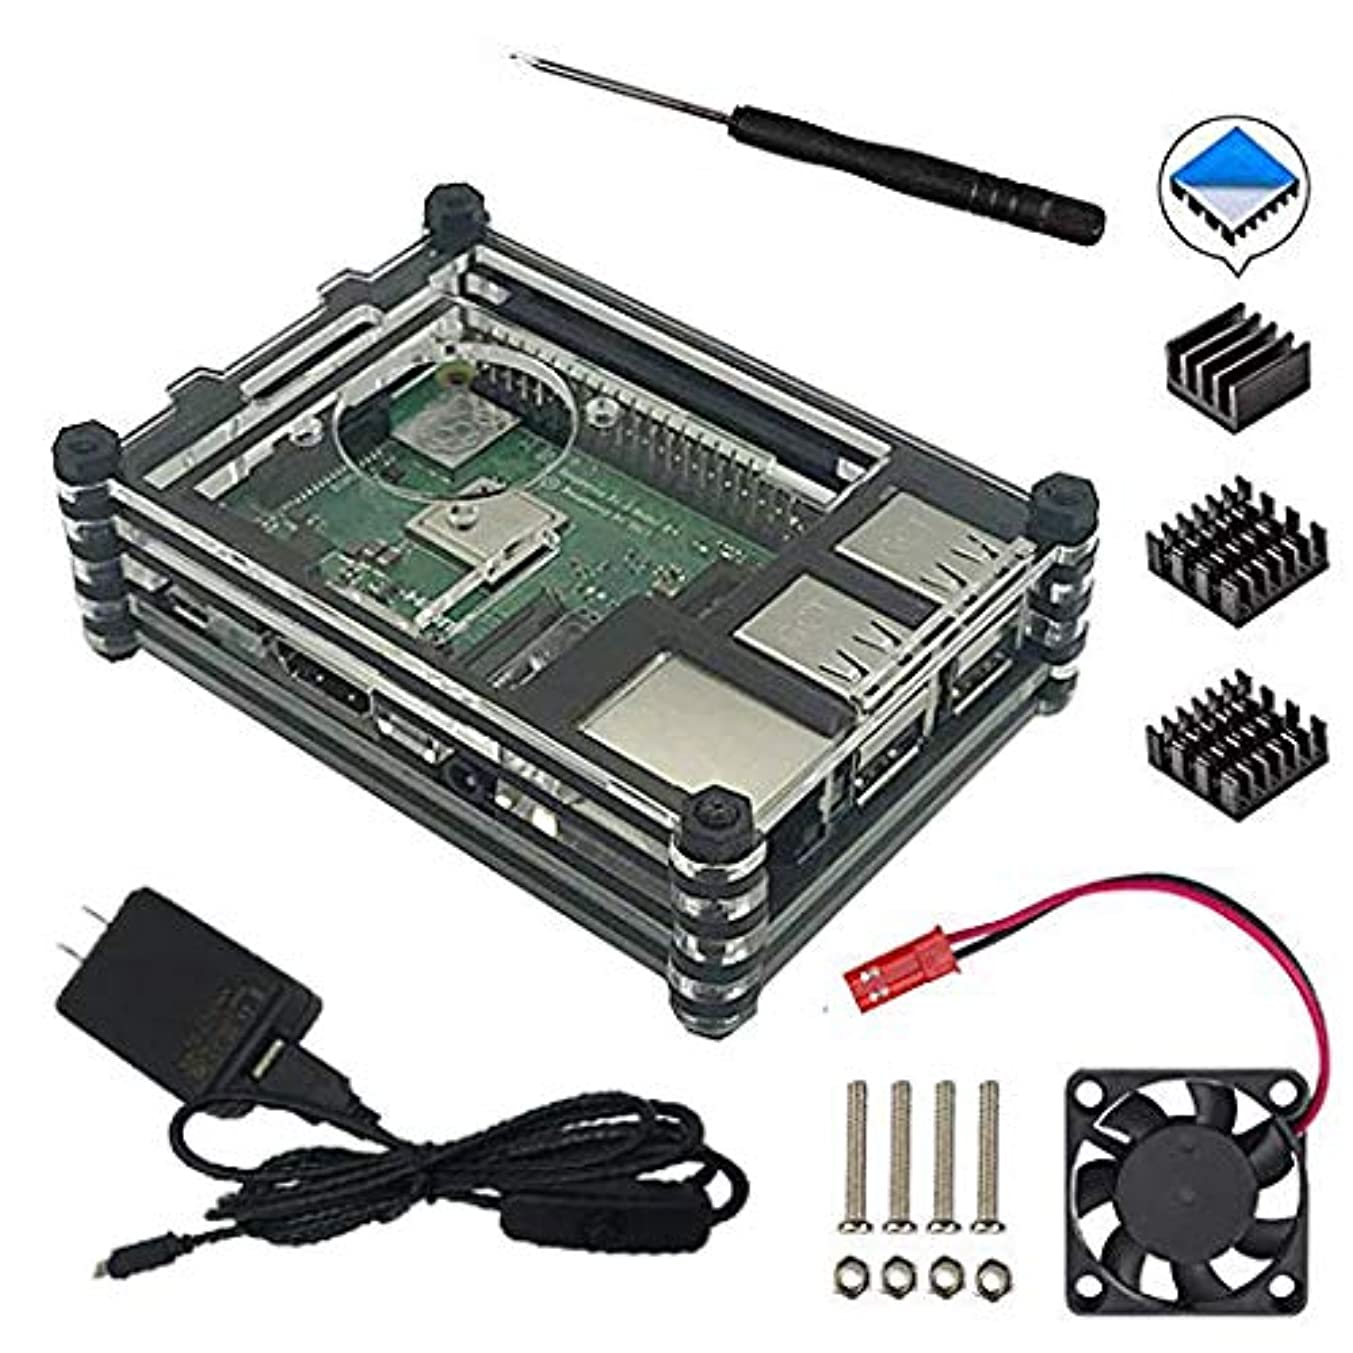 9 layers Acrylic Case for Raspberry Pi 3 Model B+ 3B Universal version with Fan Cooling and Heatsinks, 5V/2.5A Power Supply, Micro USB Cable with On/Off Switch